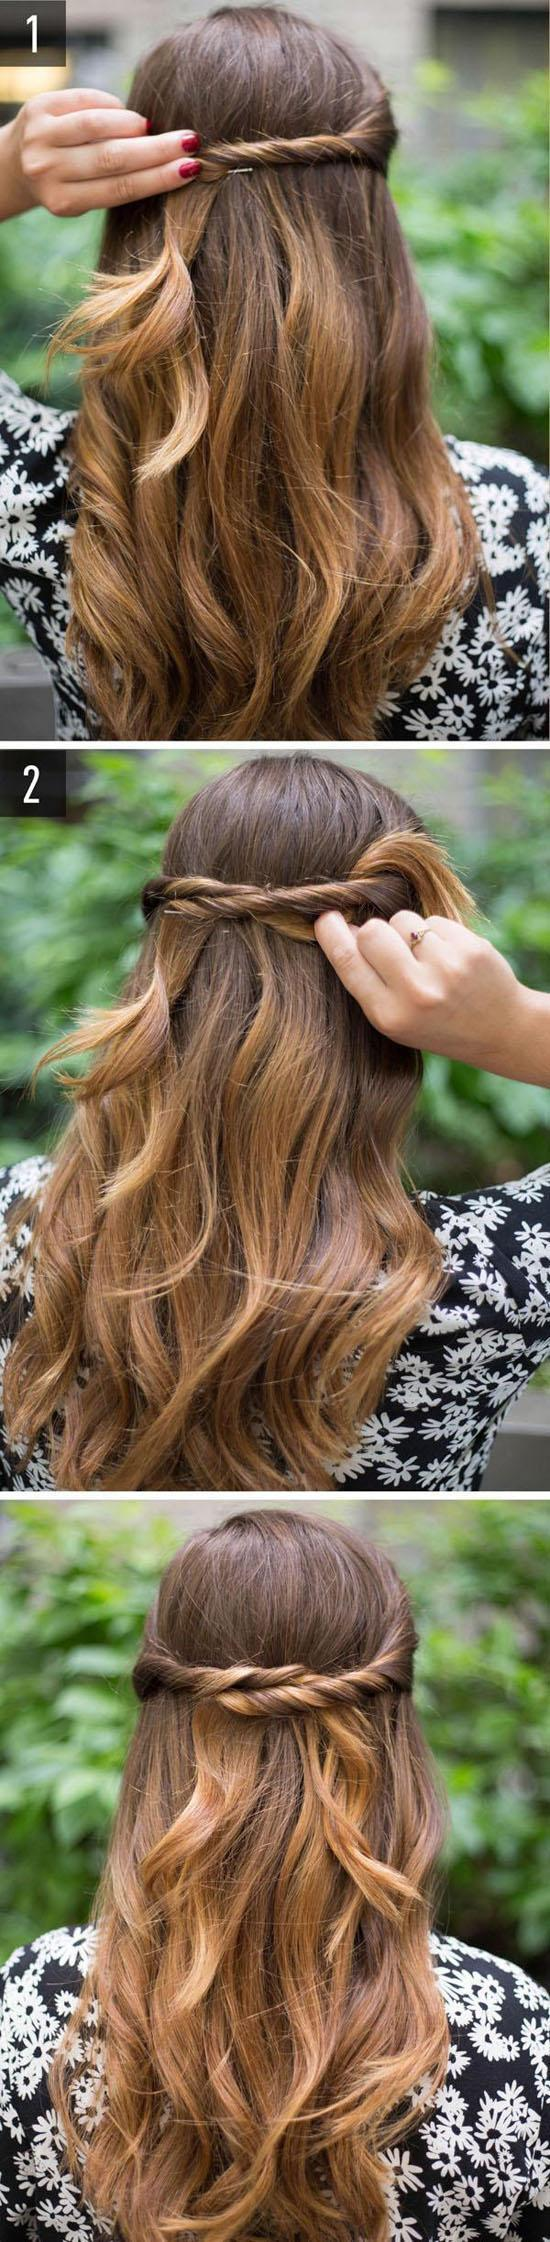 32 Quick And Easy Hairstyle For Busy Women